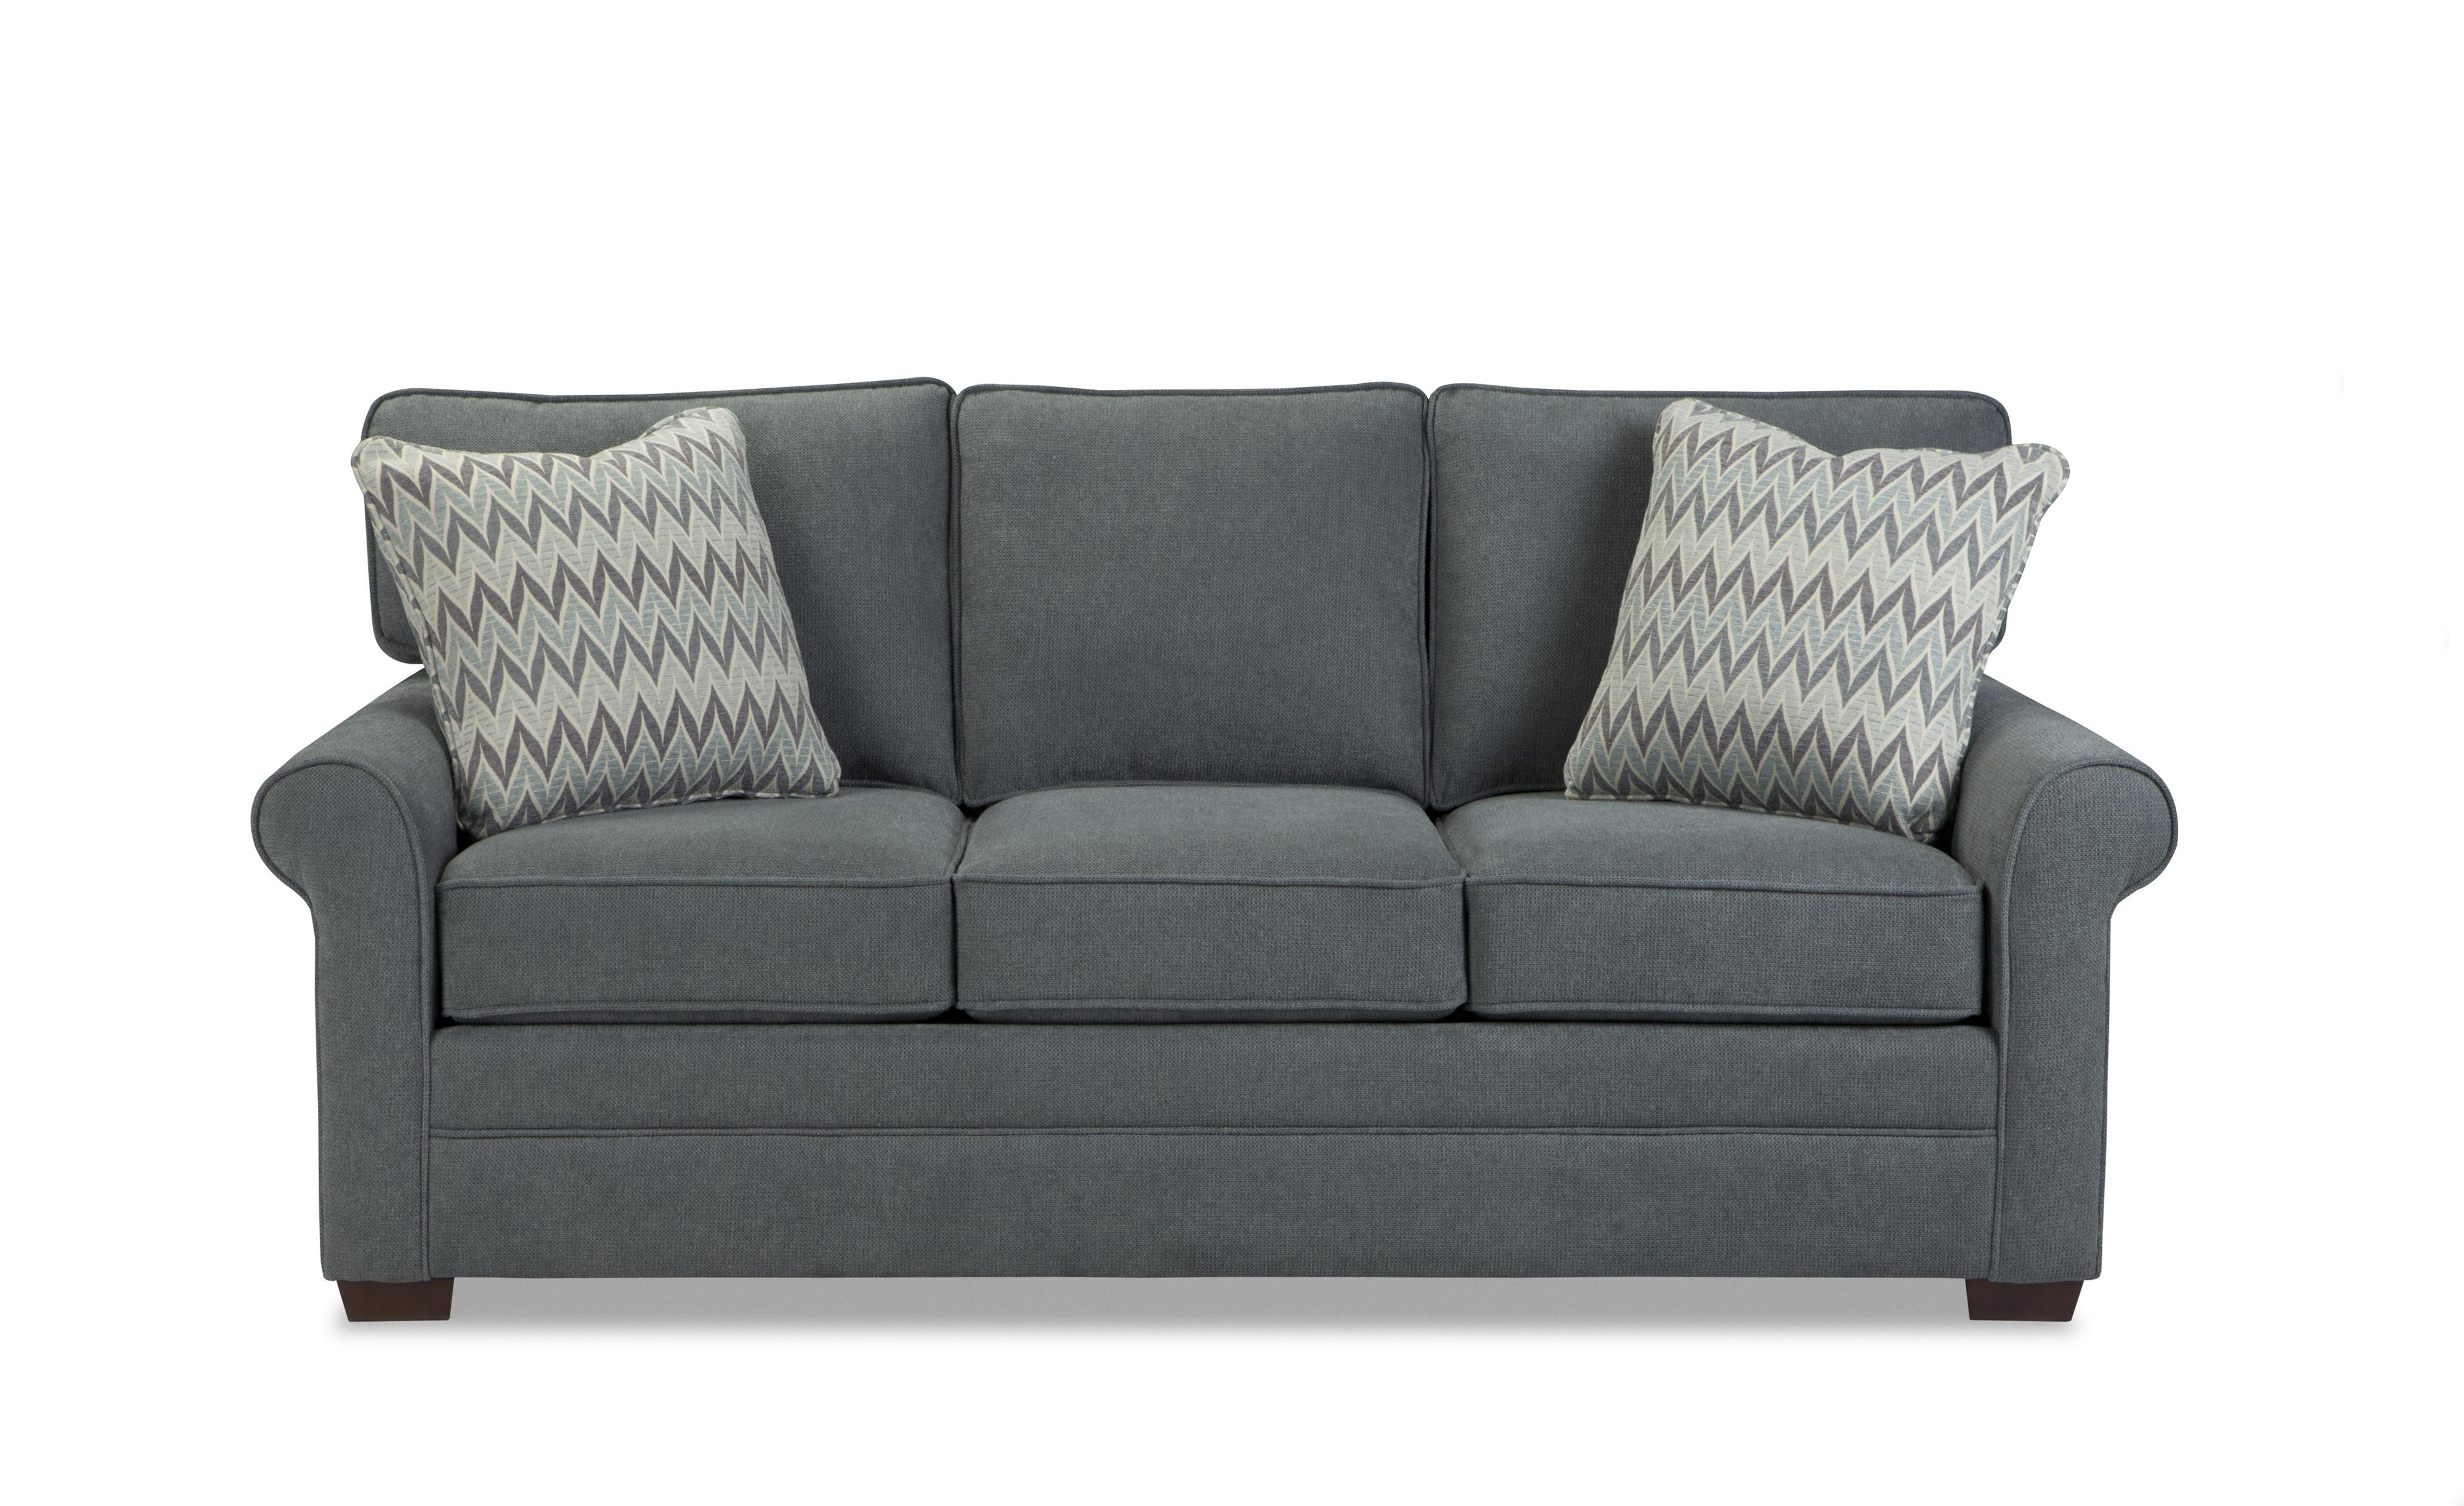 Craftmaster 7523 Transitional Sofa with Rolled Arms and Loose Back